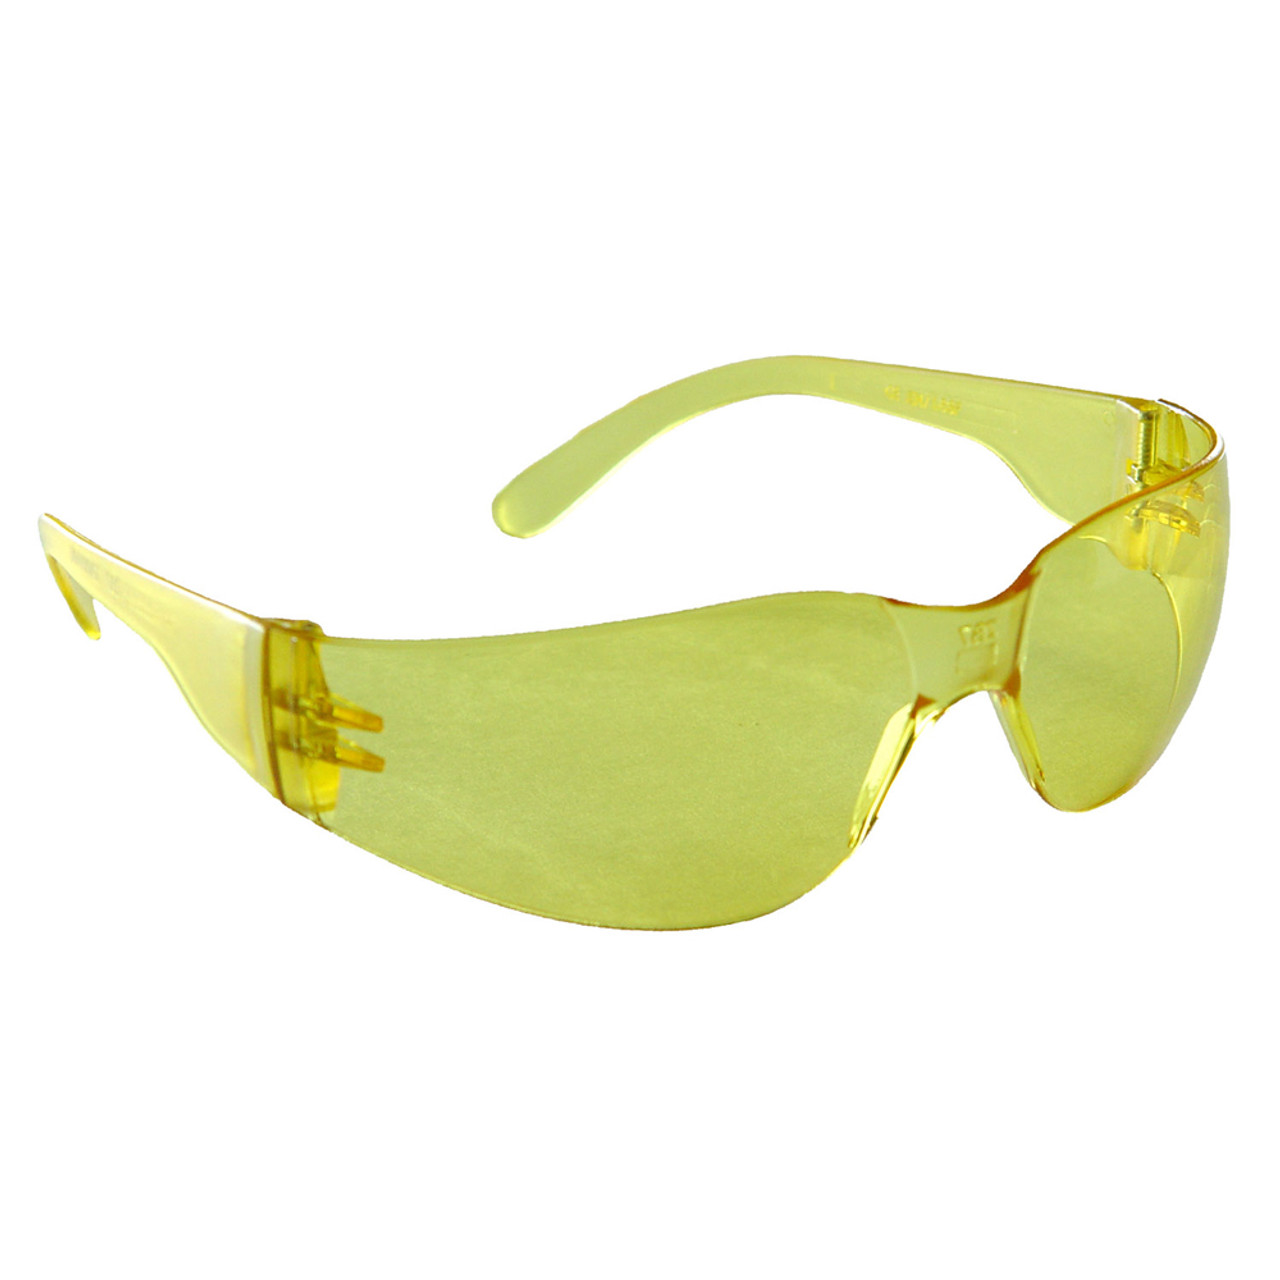 78ea049d2bfb Radians yellow frameless wrap around safety glasses with yellow lenses and  temples